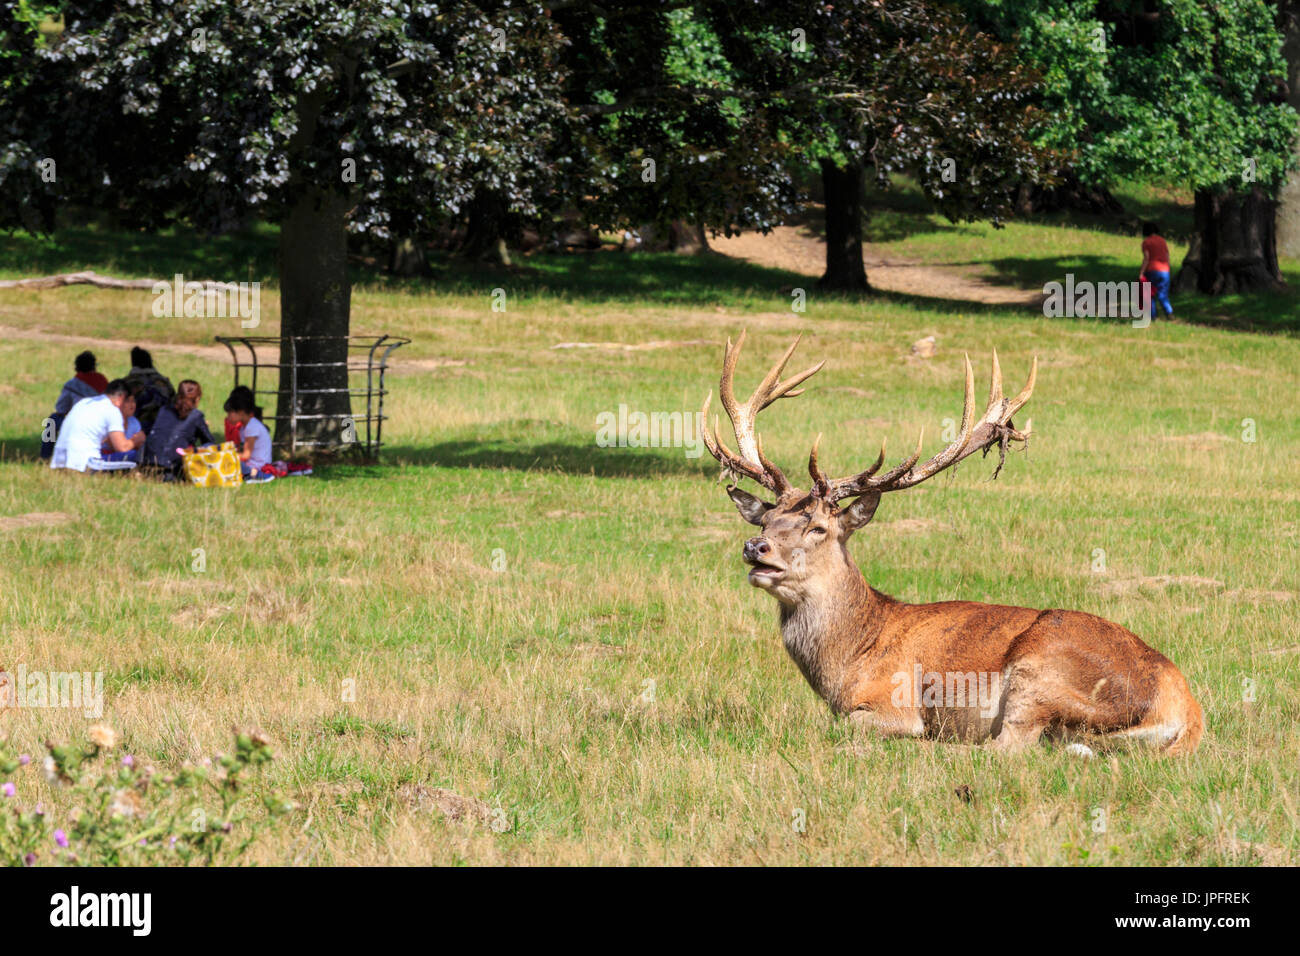 Red Deer Grazing In Richmond Stock Photos Red Deer Grazing In Richmond Stock Images Alamy